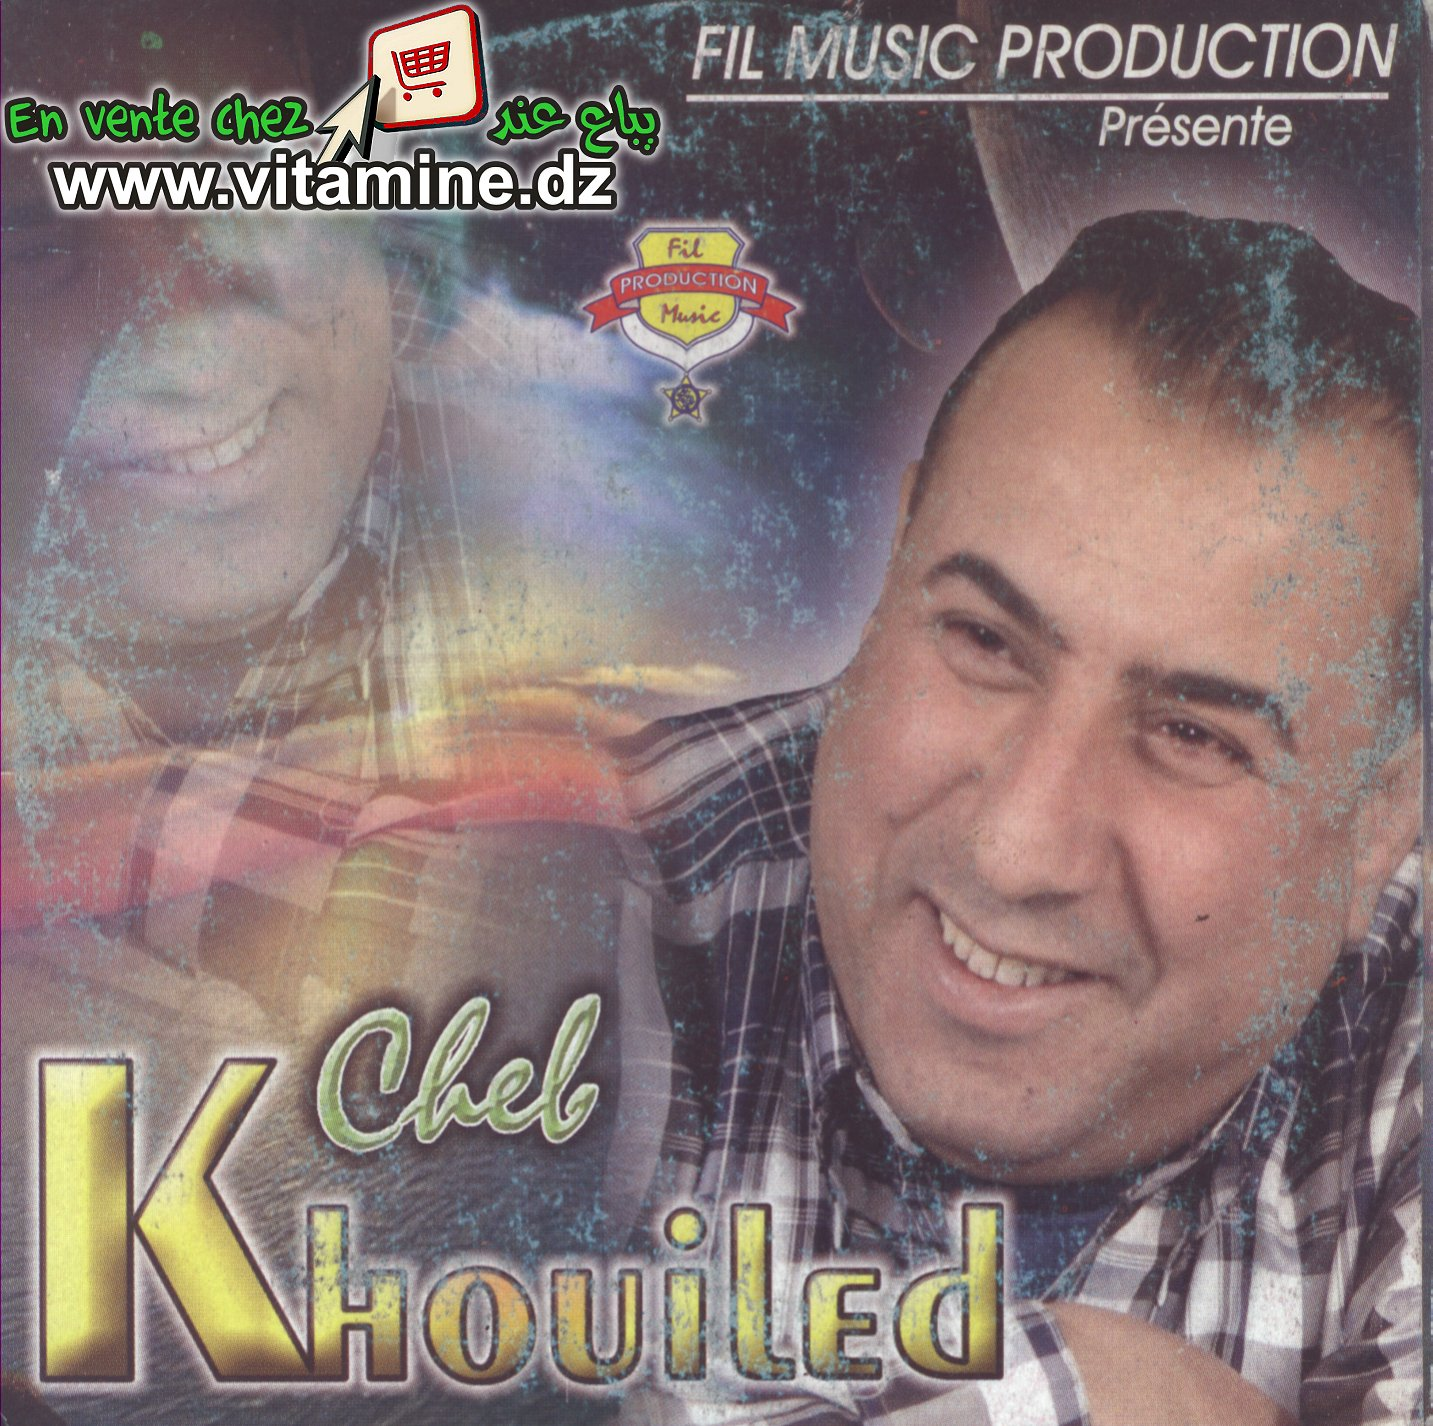 Cheb Khouiled